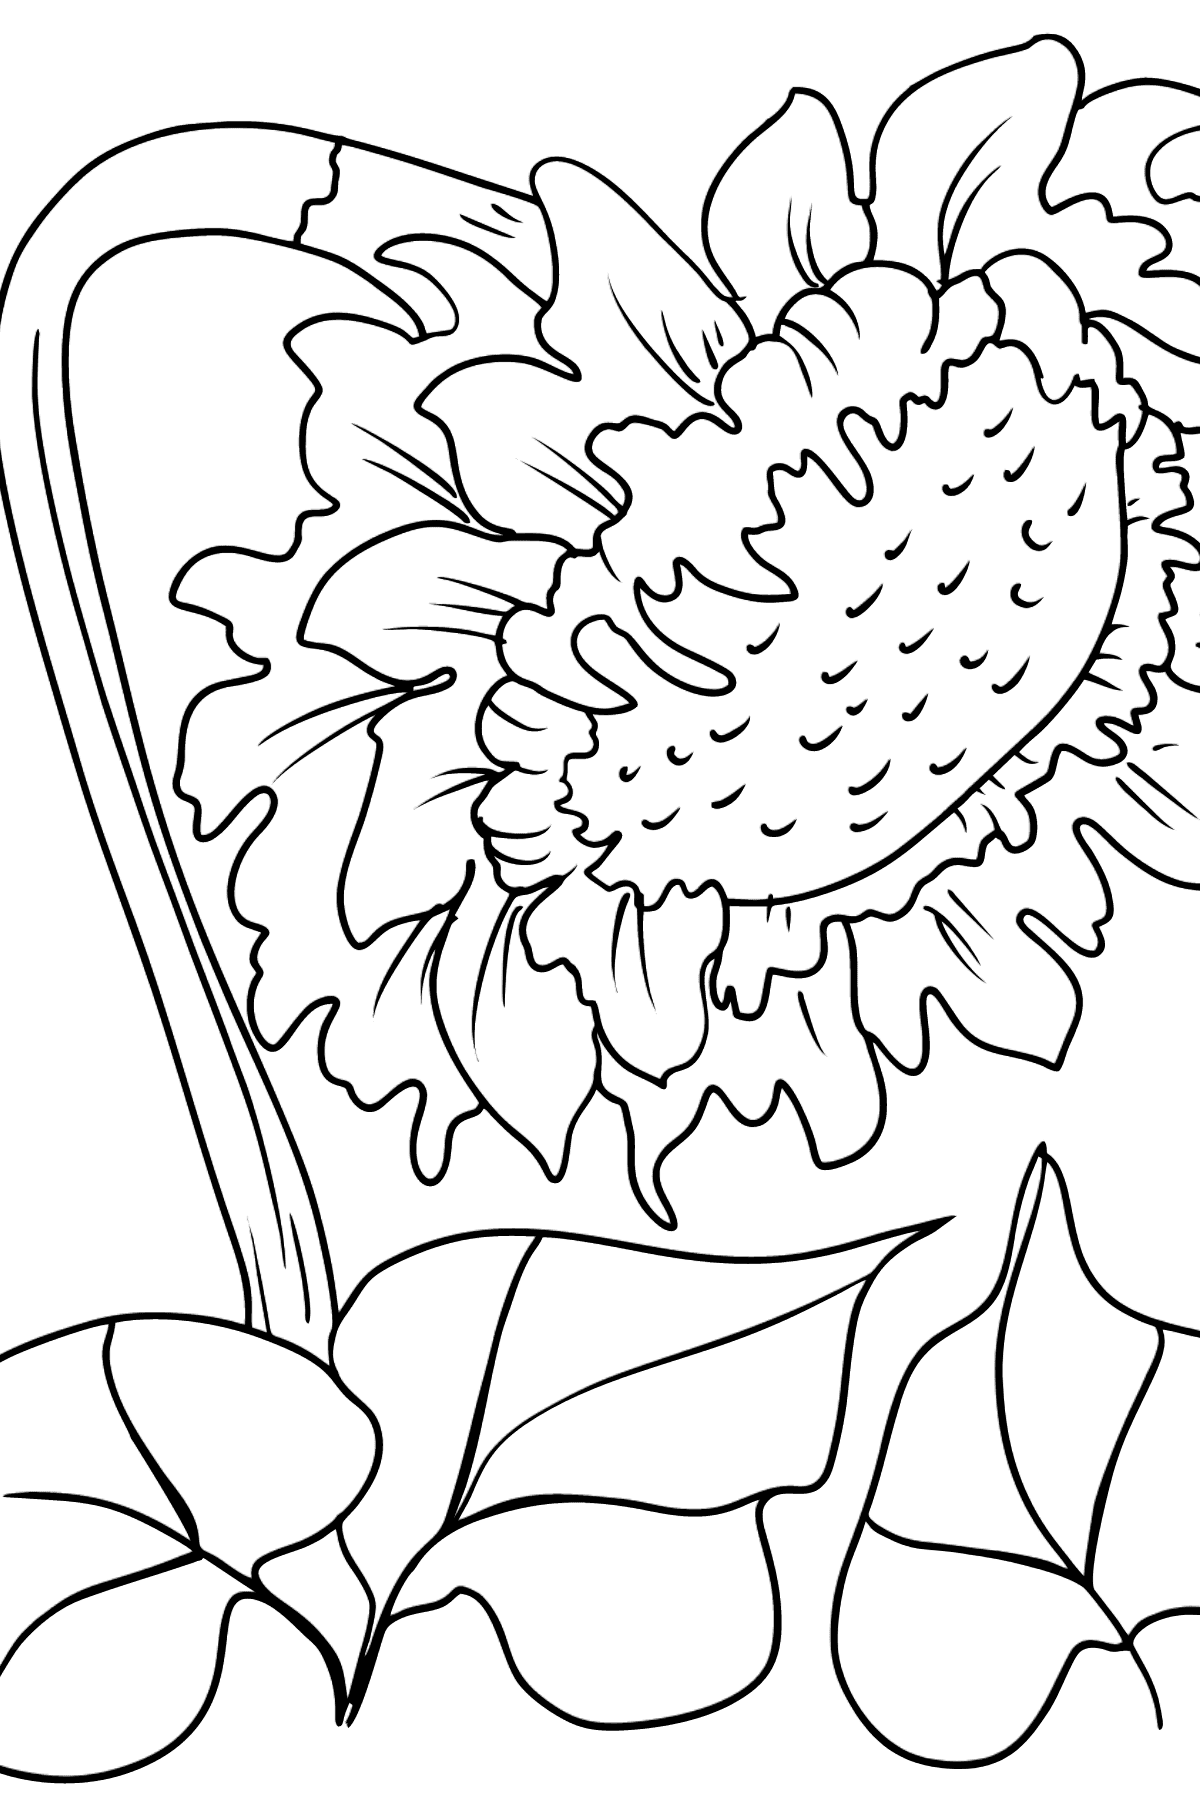 Sunflower Coloring Page - Coloring Pages for Kids